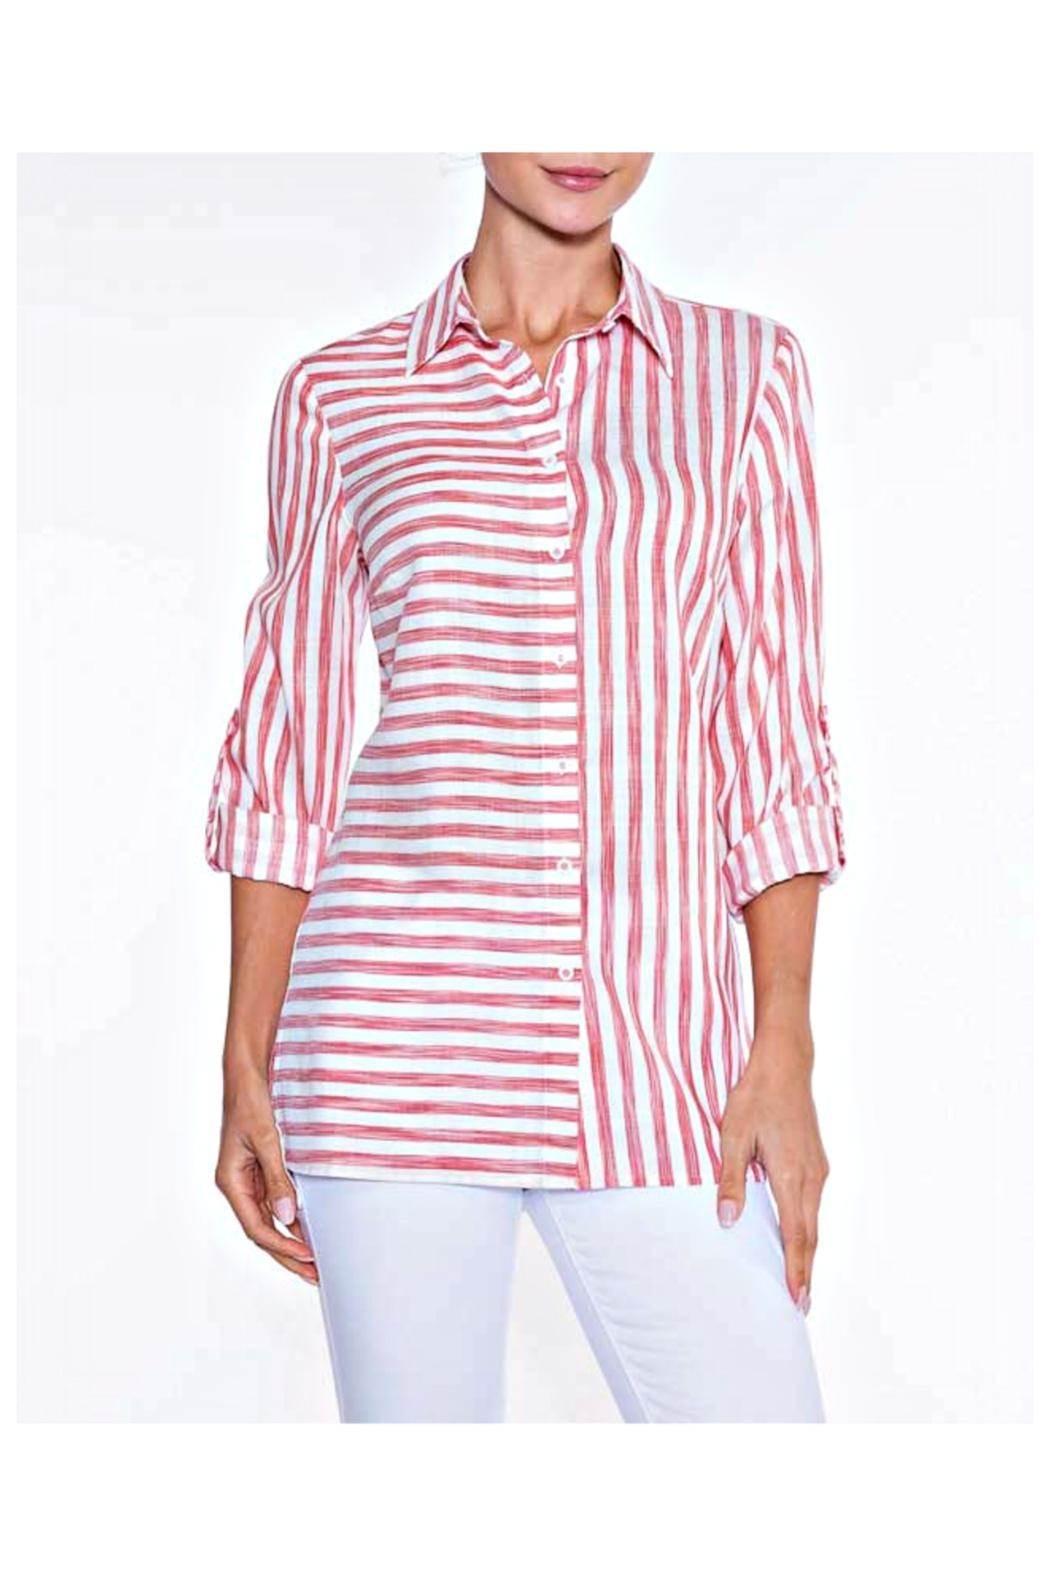 Lily Moss Red Striped Blouse - Main Image